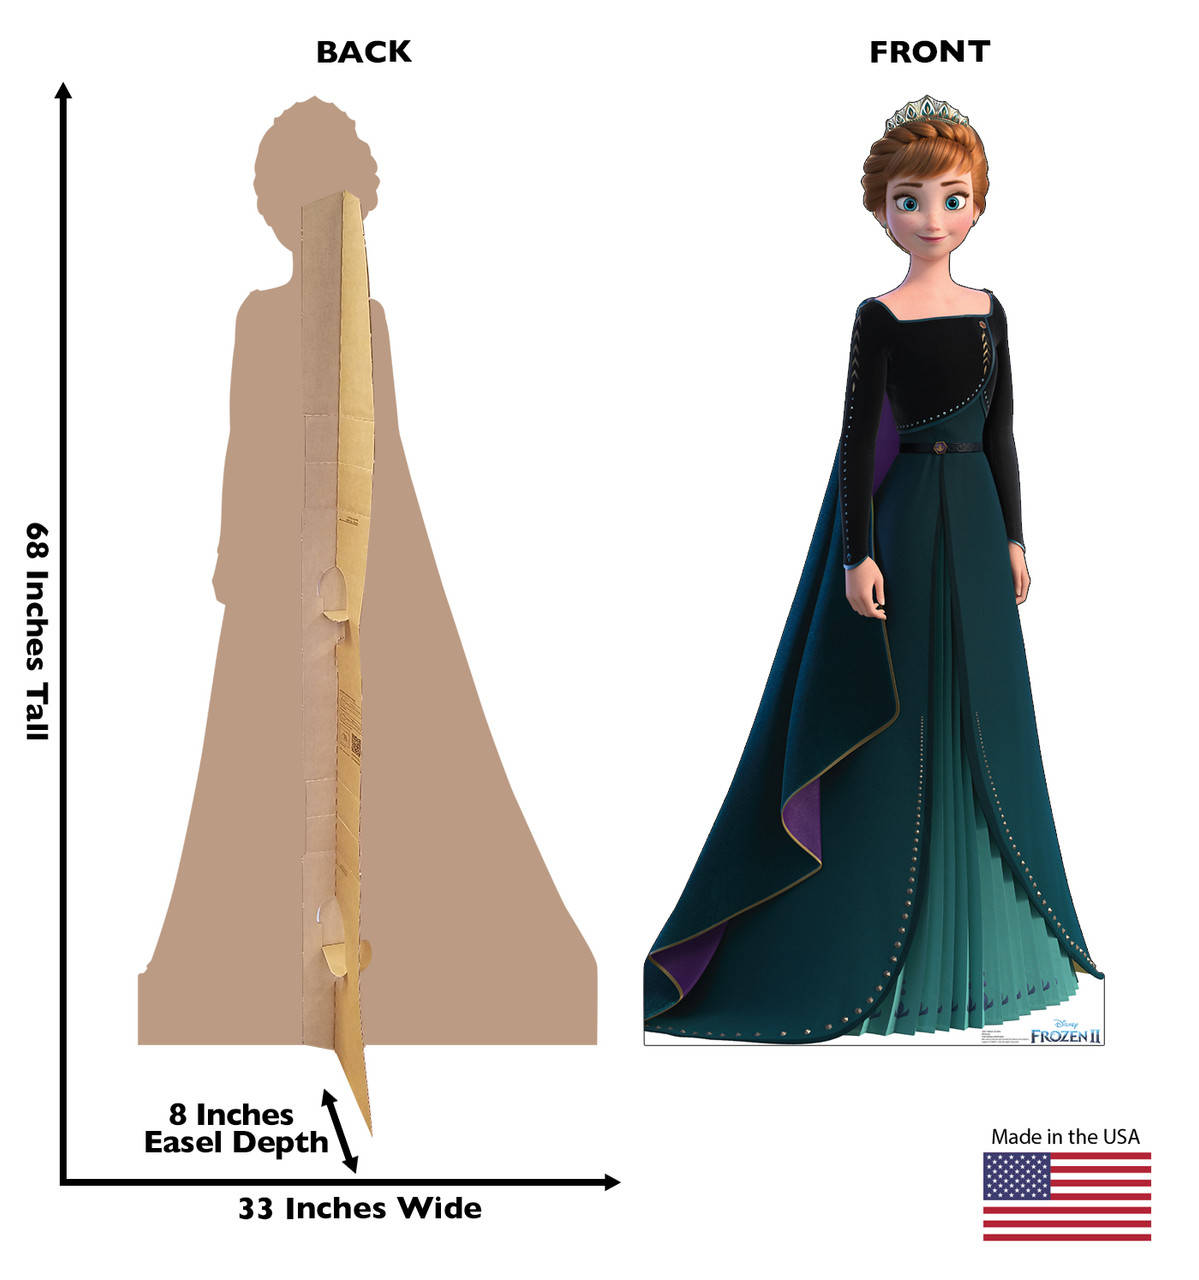 Life-size cardboard standee of Anna Epilogue Gown from Disney's Frozen 2 with back and front dimensions.